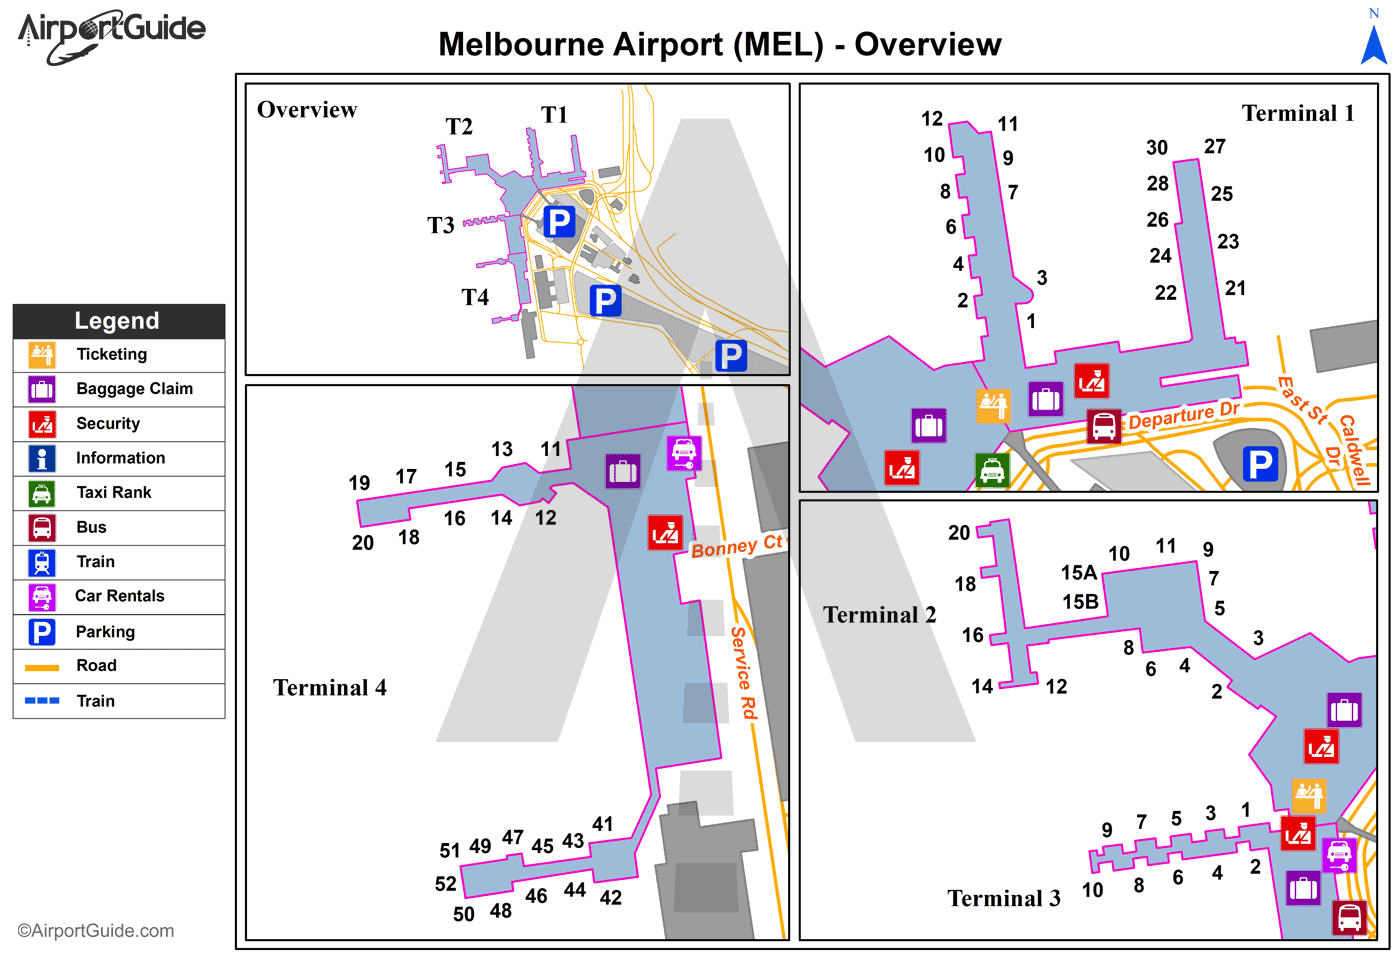 Melbourne - Melbourne International (MEL) Airport Terminal Map - Overview